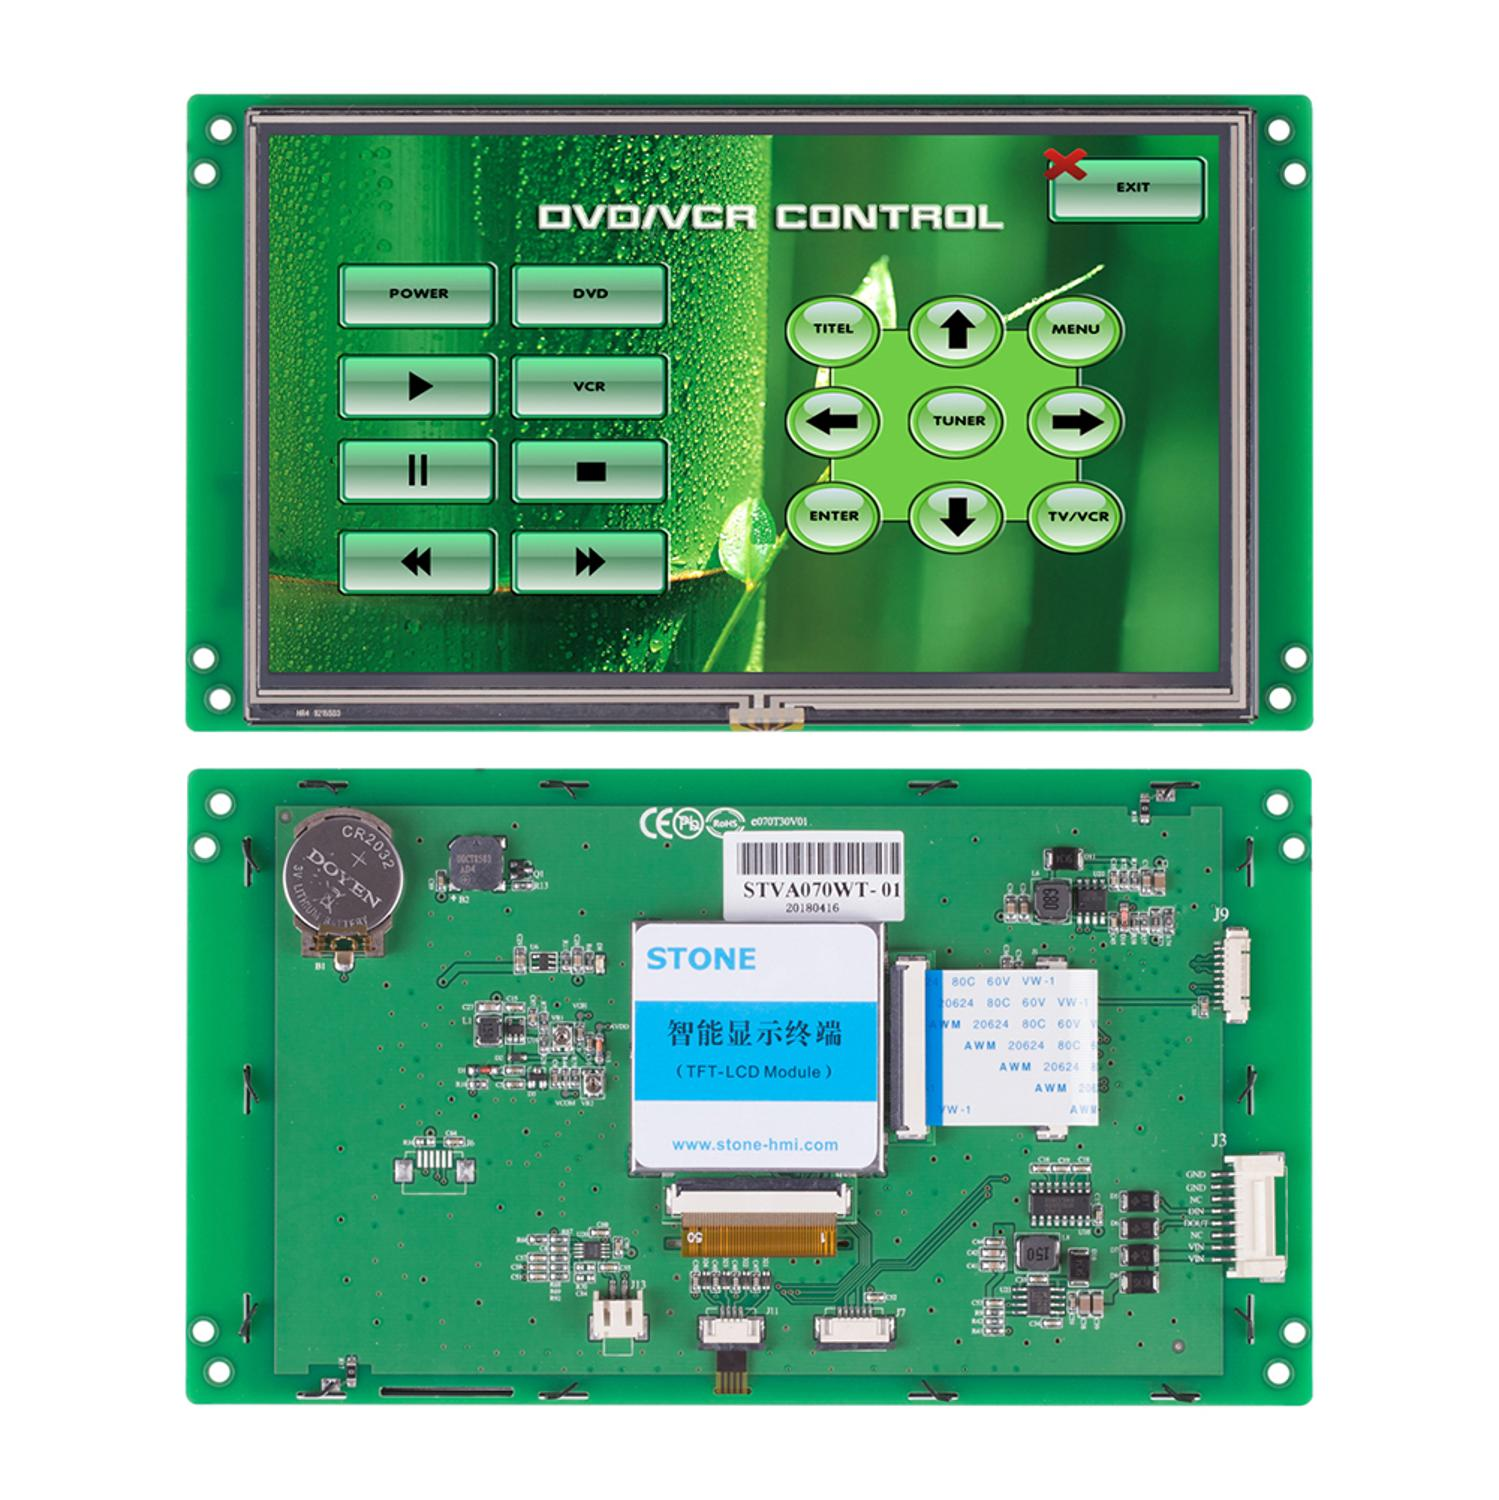 7 Inch LCD Controller With MCU Controlled By Command Set